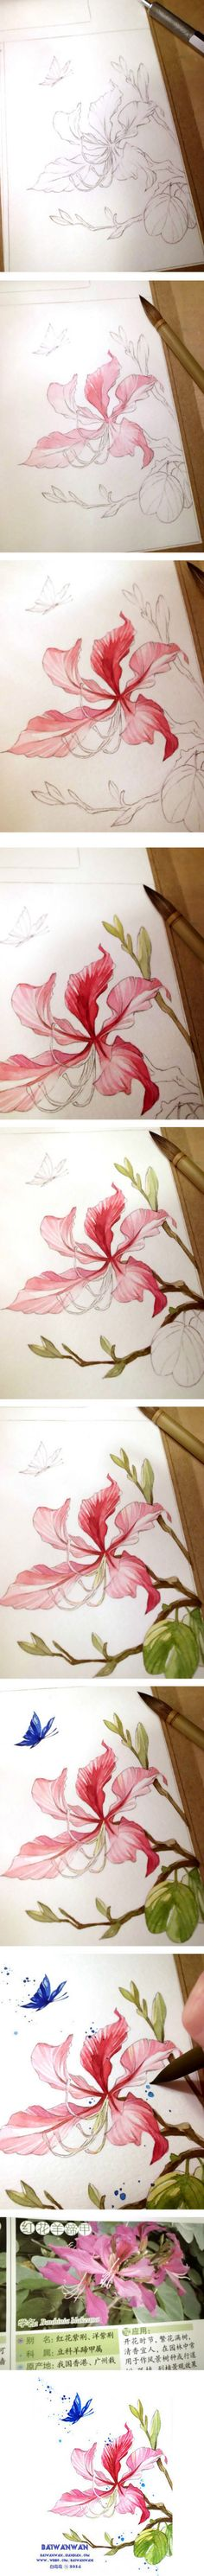 20 Delicate Colorful Watercolor Flower Painting Tutorials In Images-HOMESTHETICS (9)